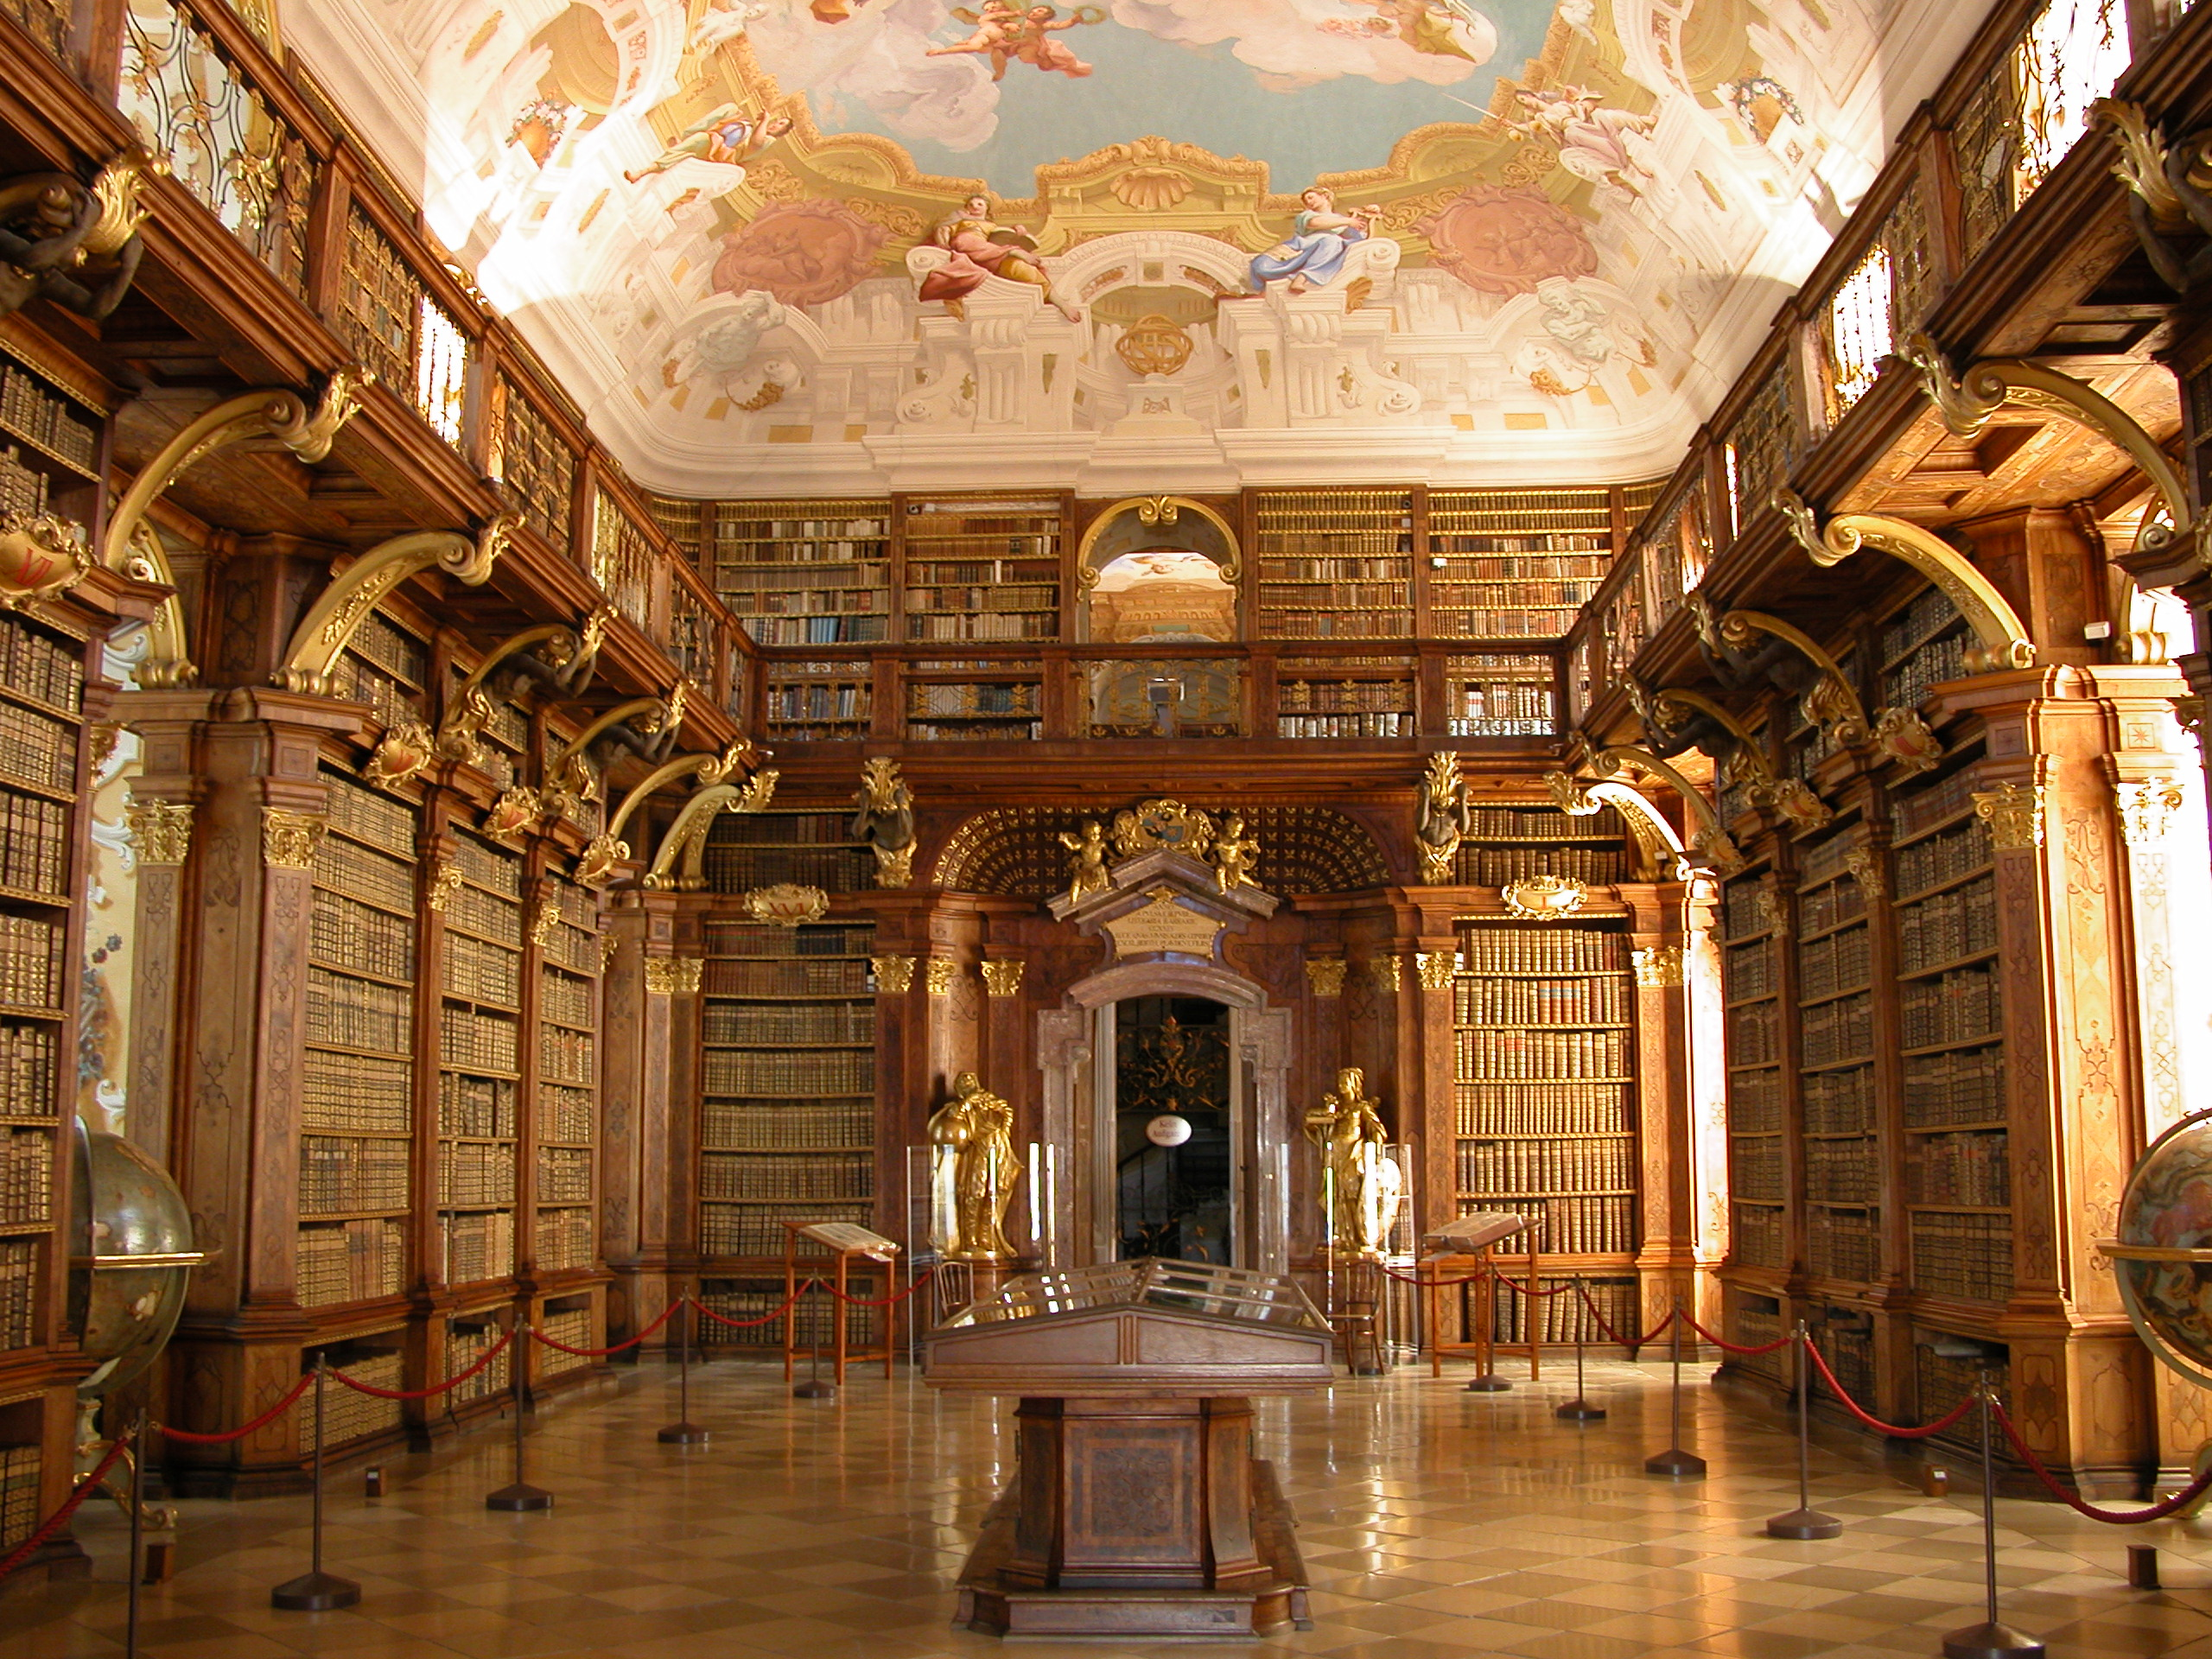 Melk_-_Abbey_-_Library.jpg